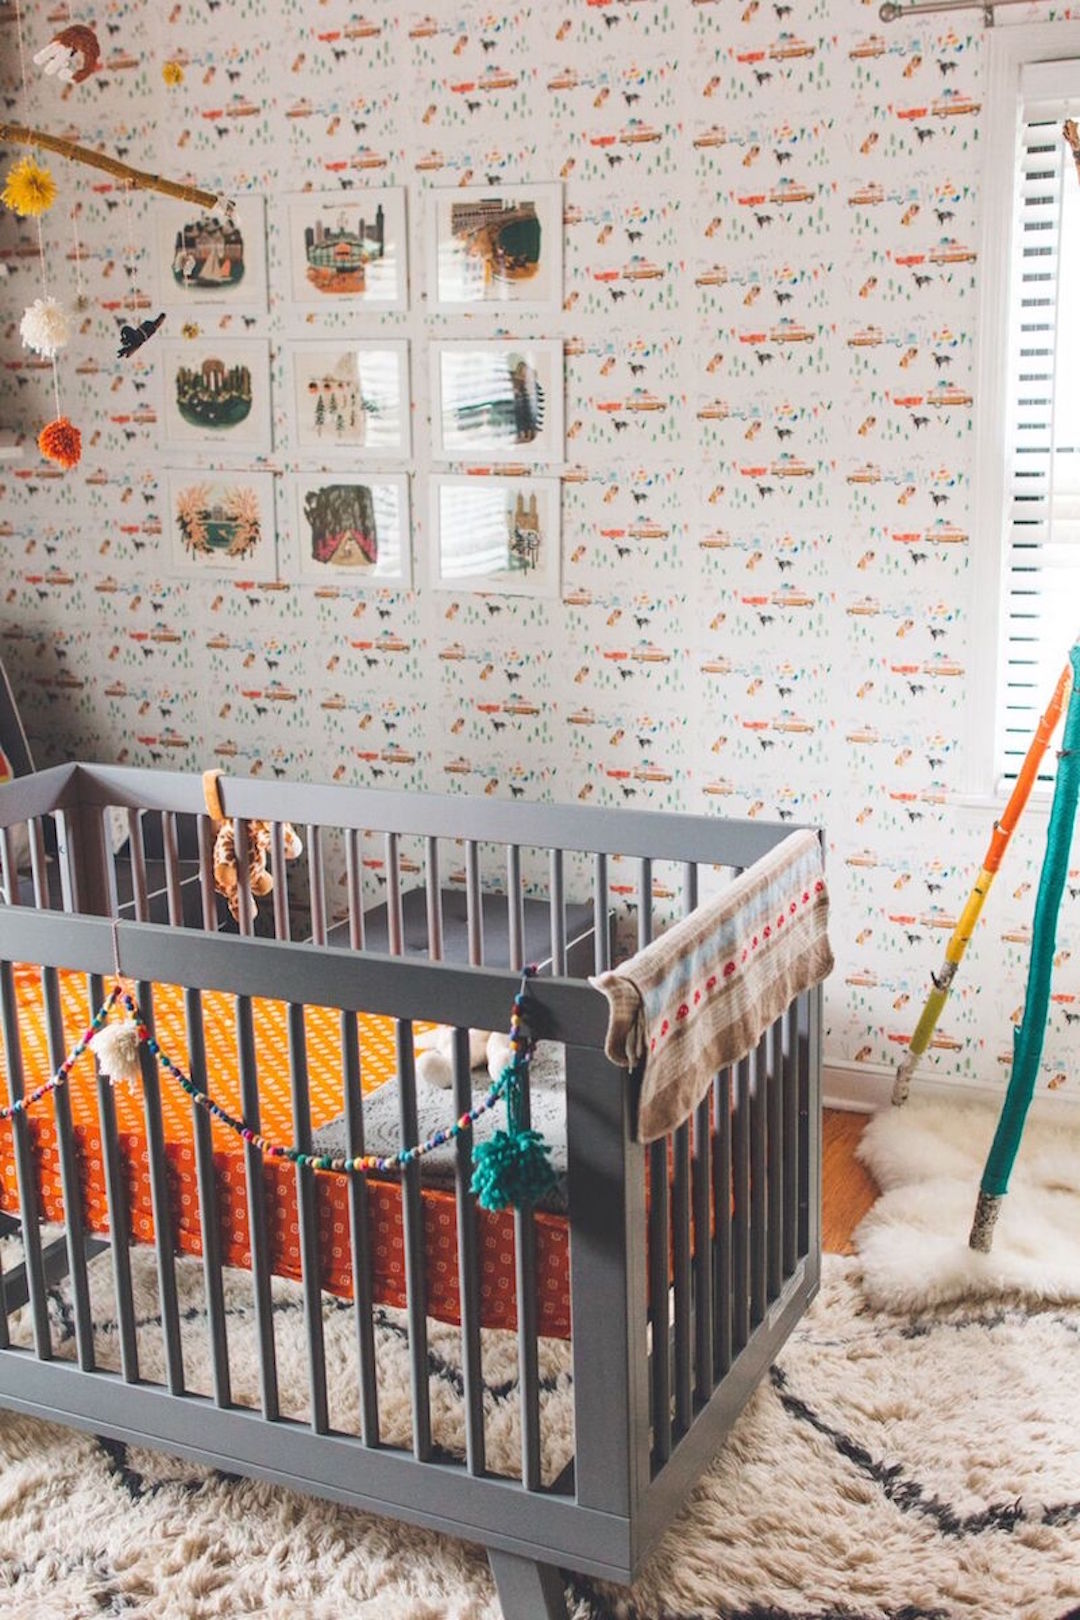 At The End Of Hall April Mueller S White And Dark Wood Home Lies A Wes Anderson Wonderland Nursery Her Three Year Old Daughter Windsor